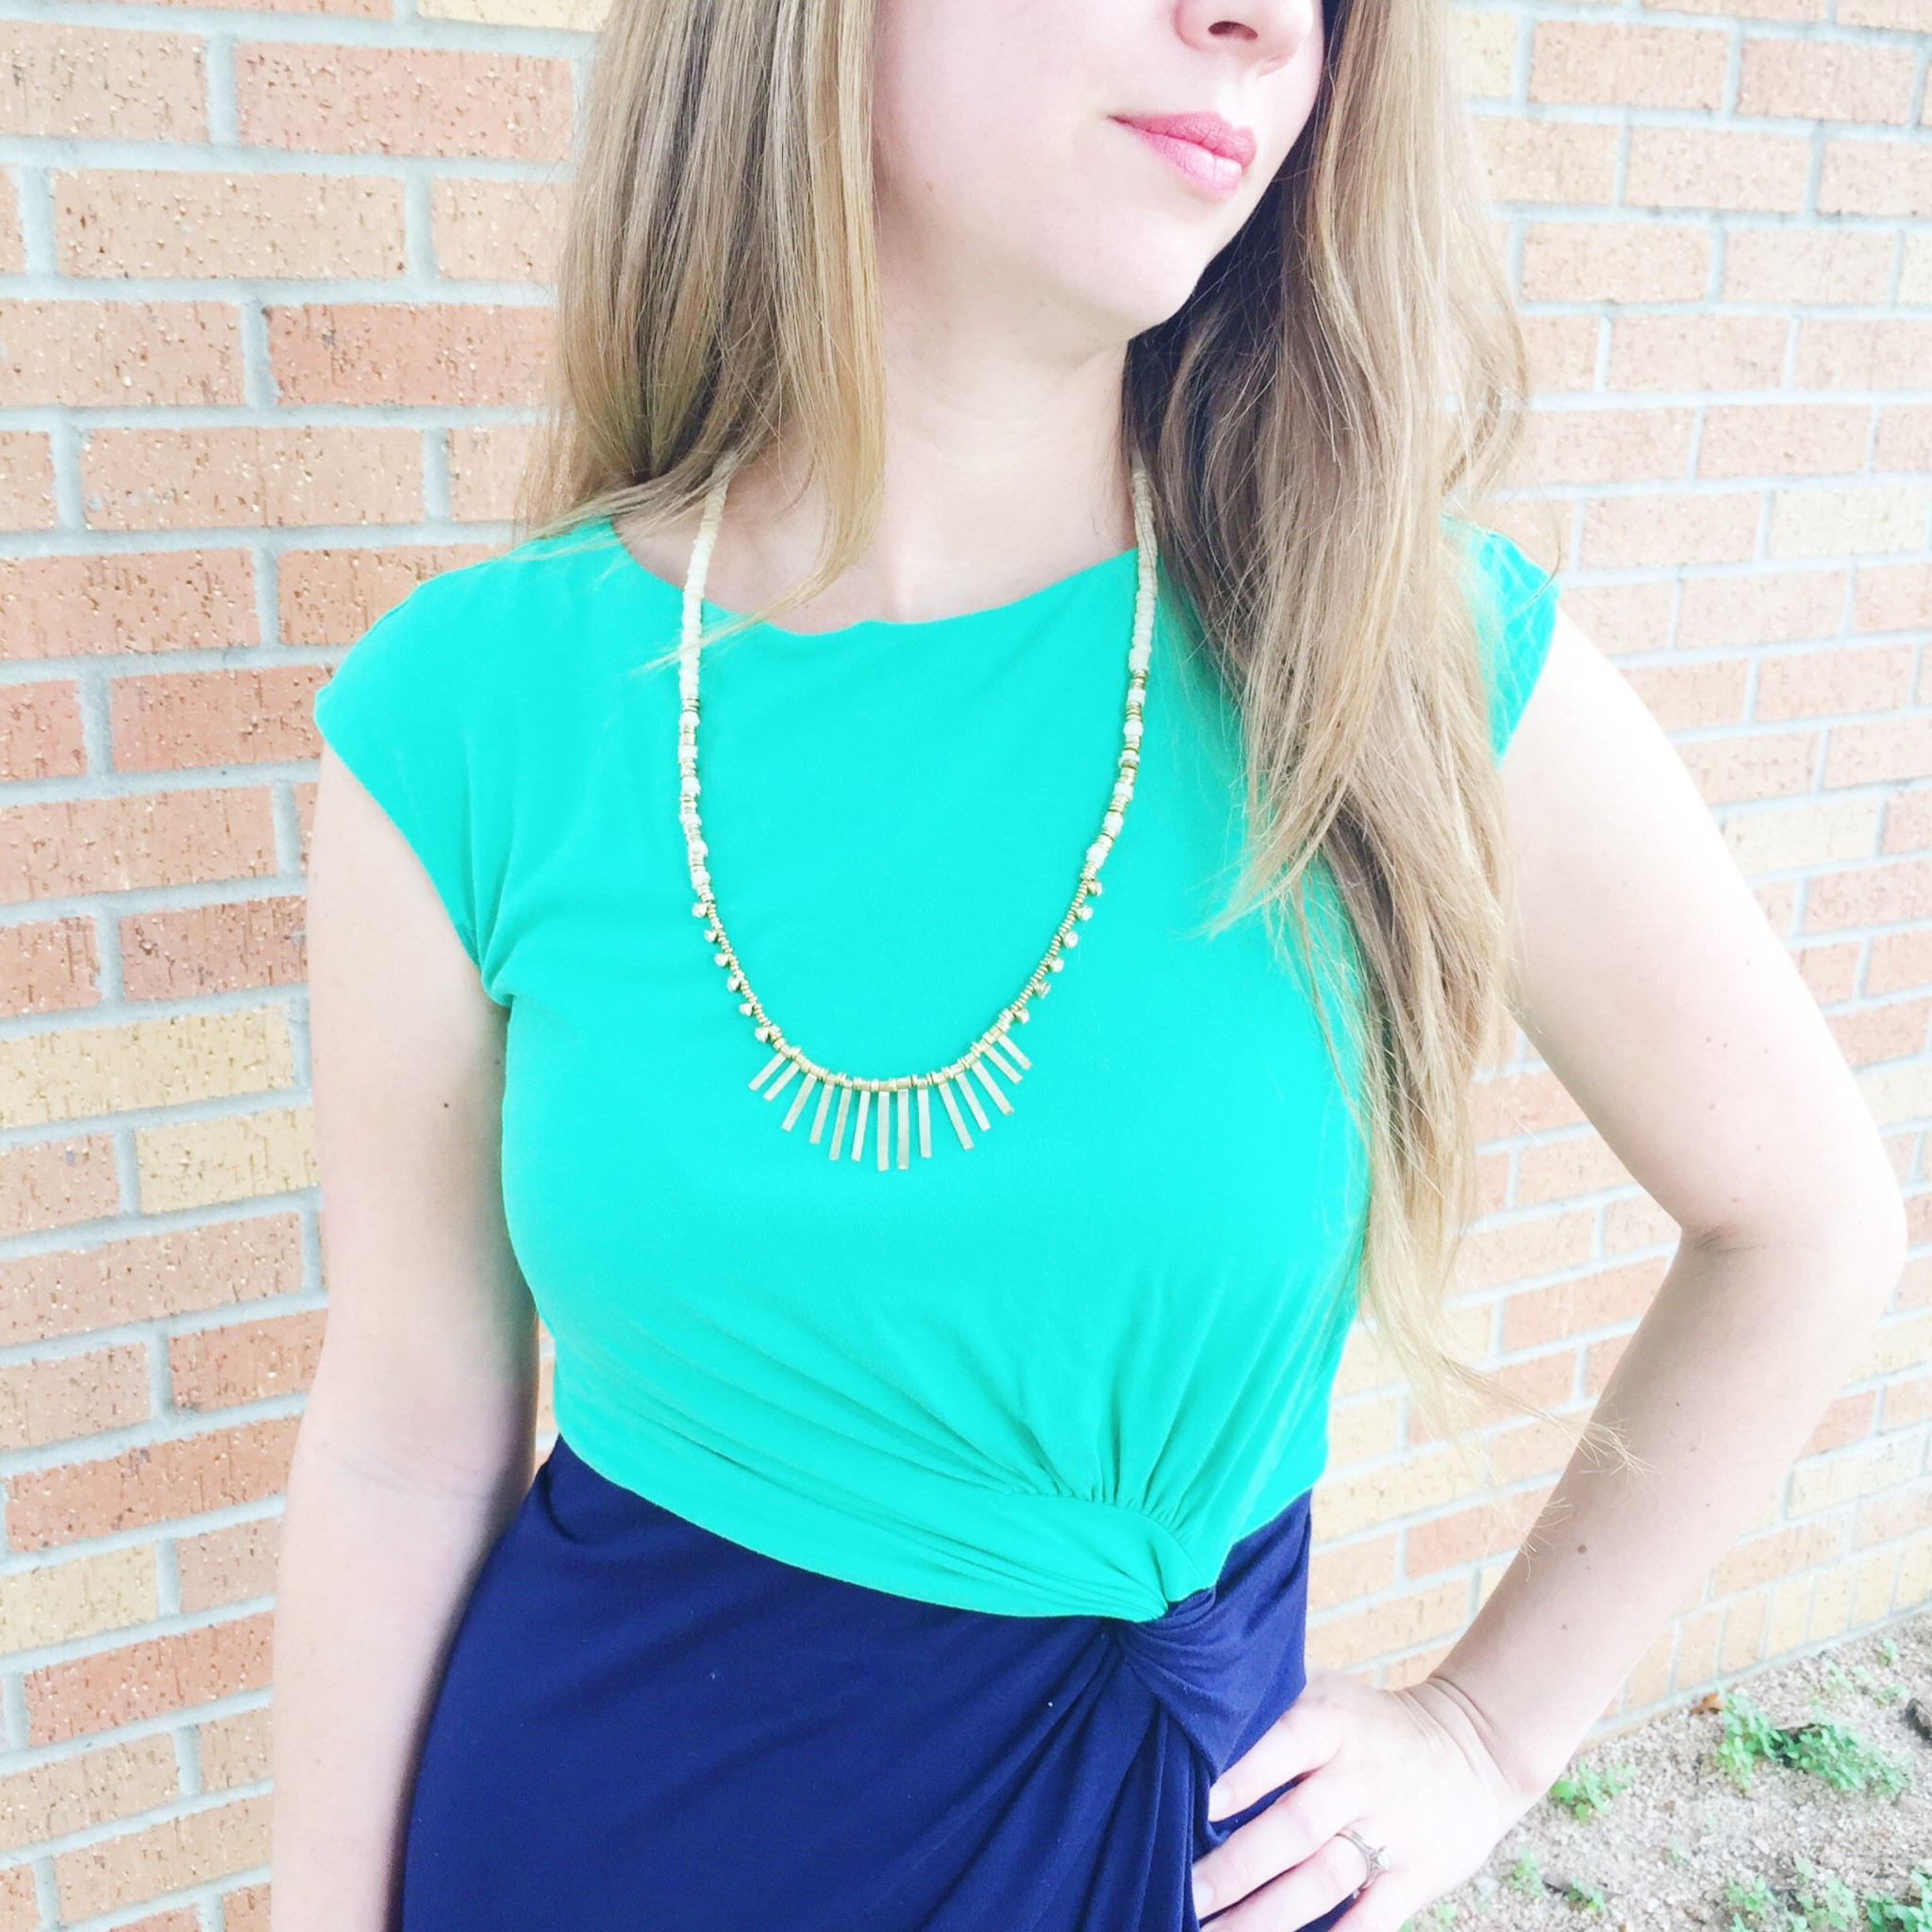 Noonday Sunburst Necklace Styled